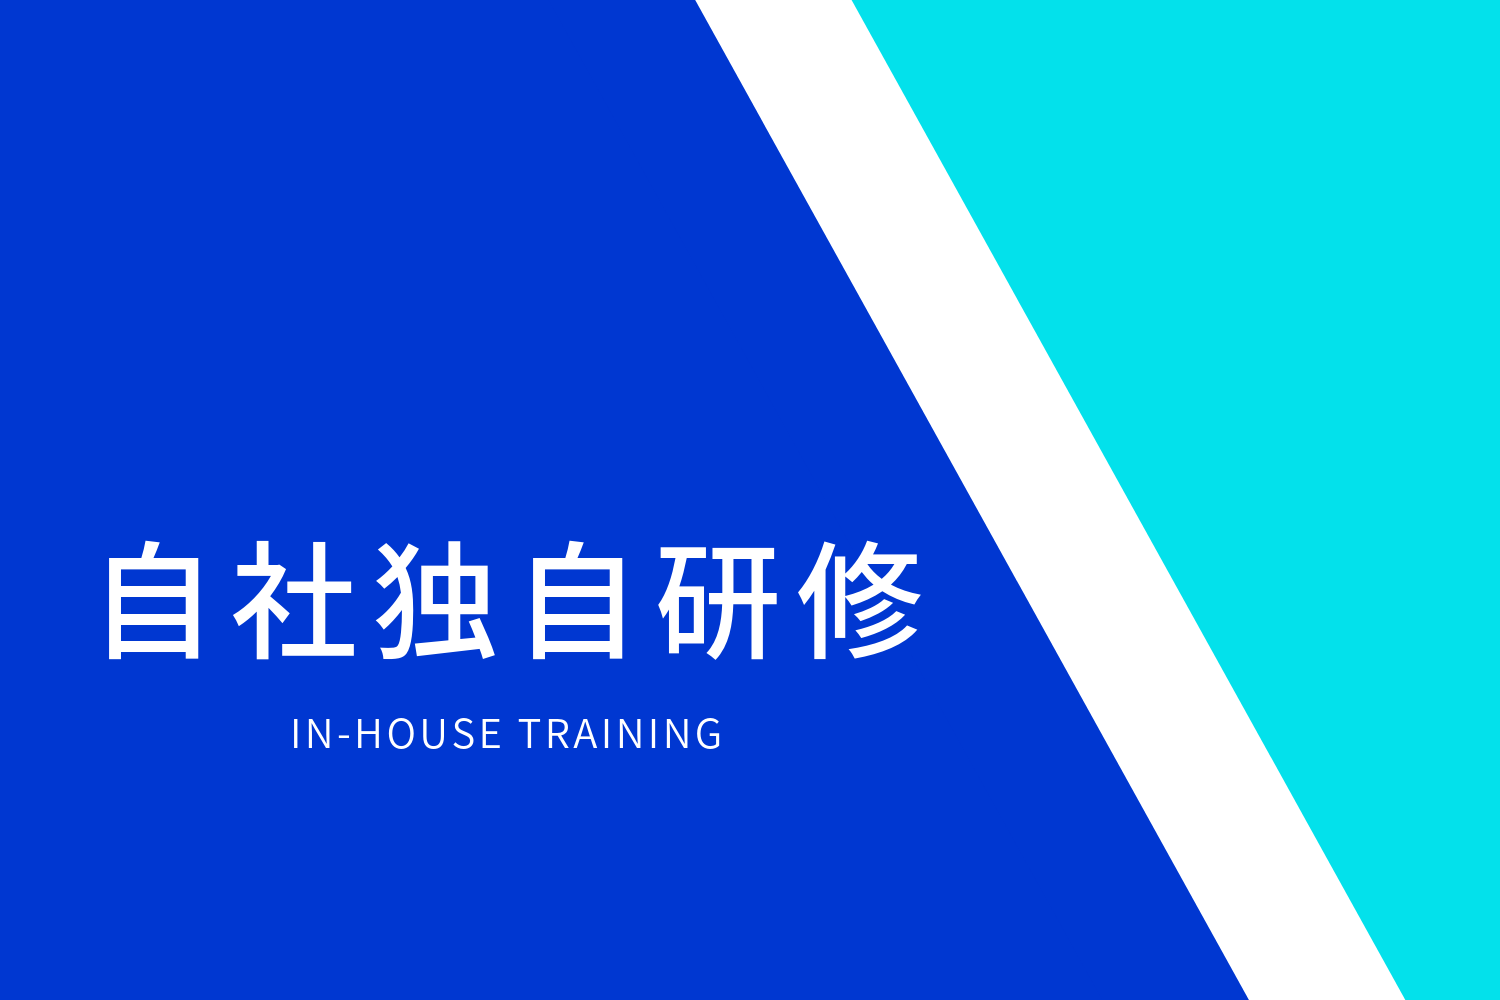 IN-HOUSE TRAINING